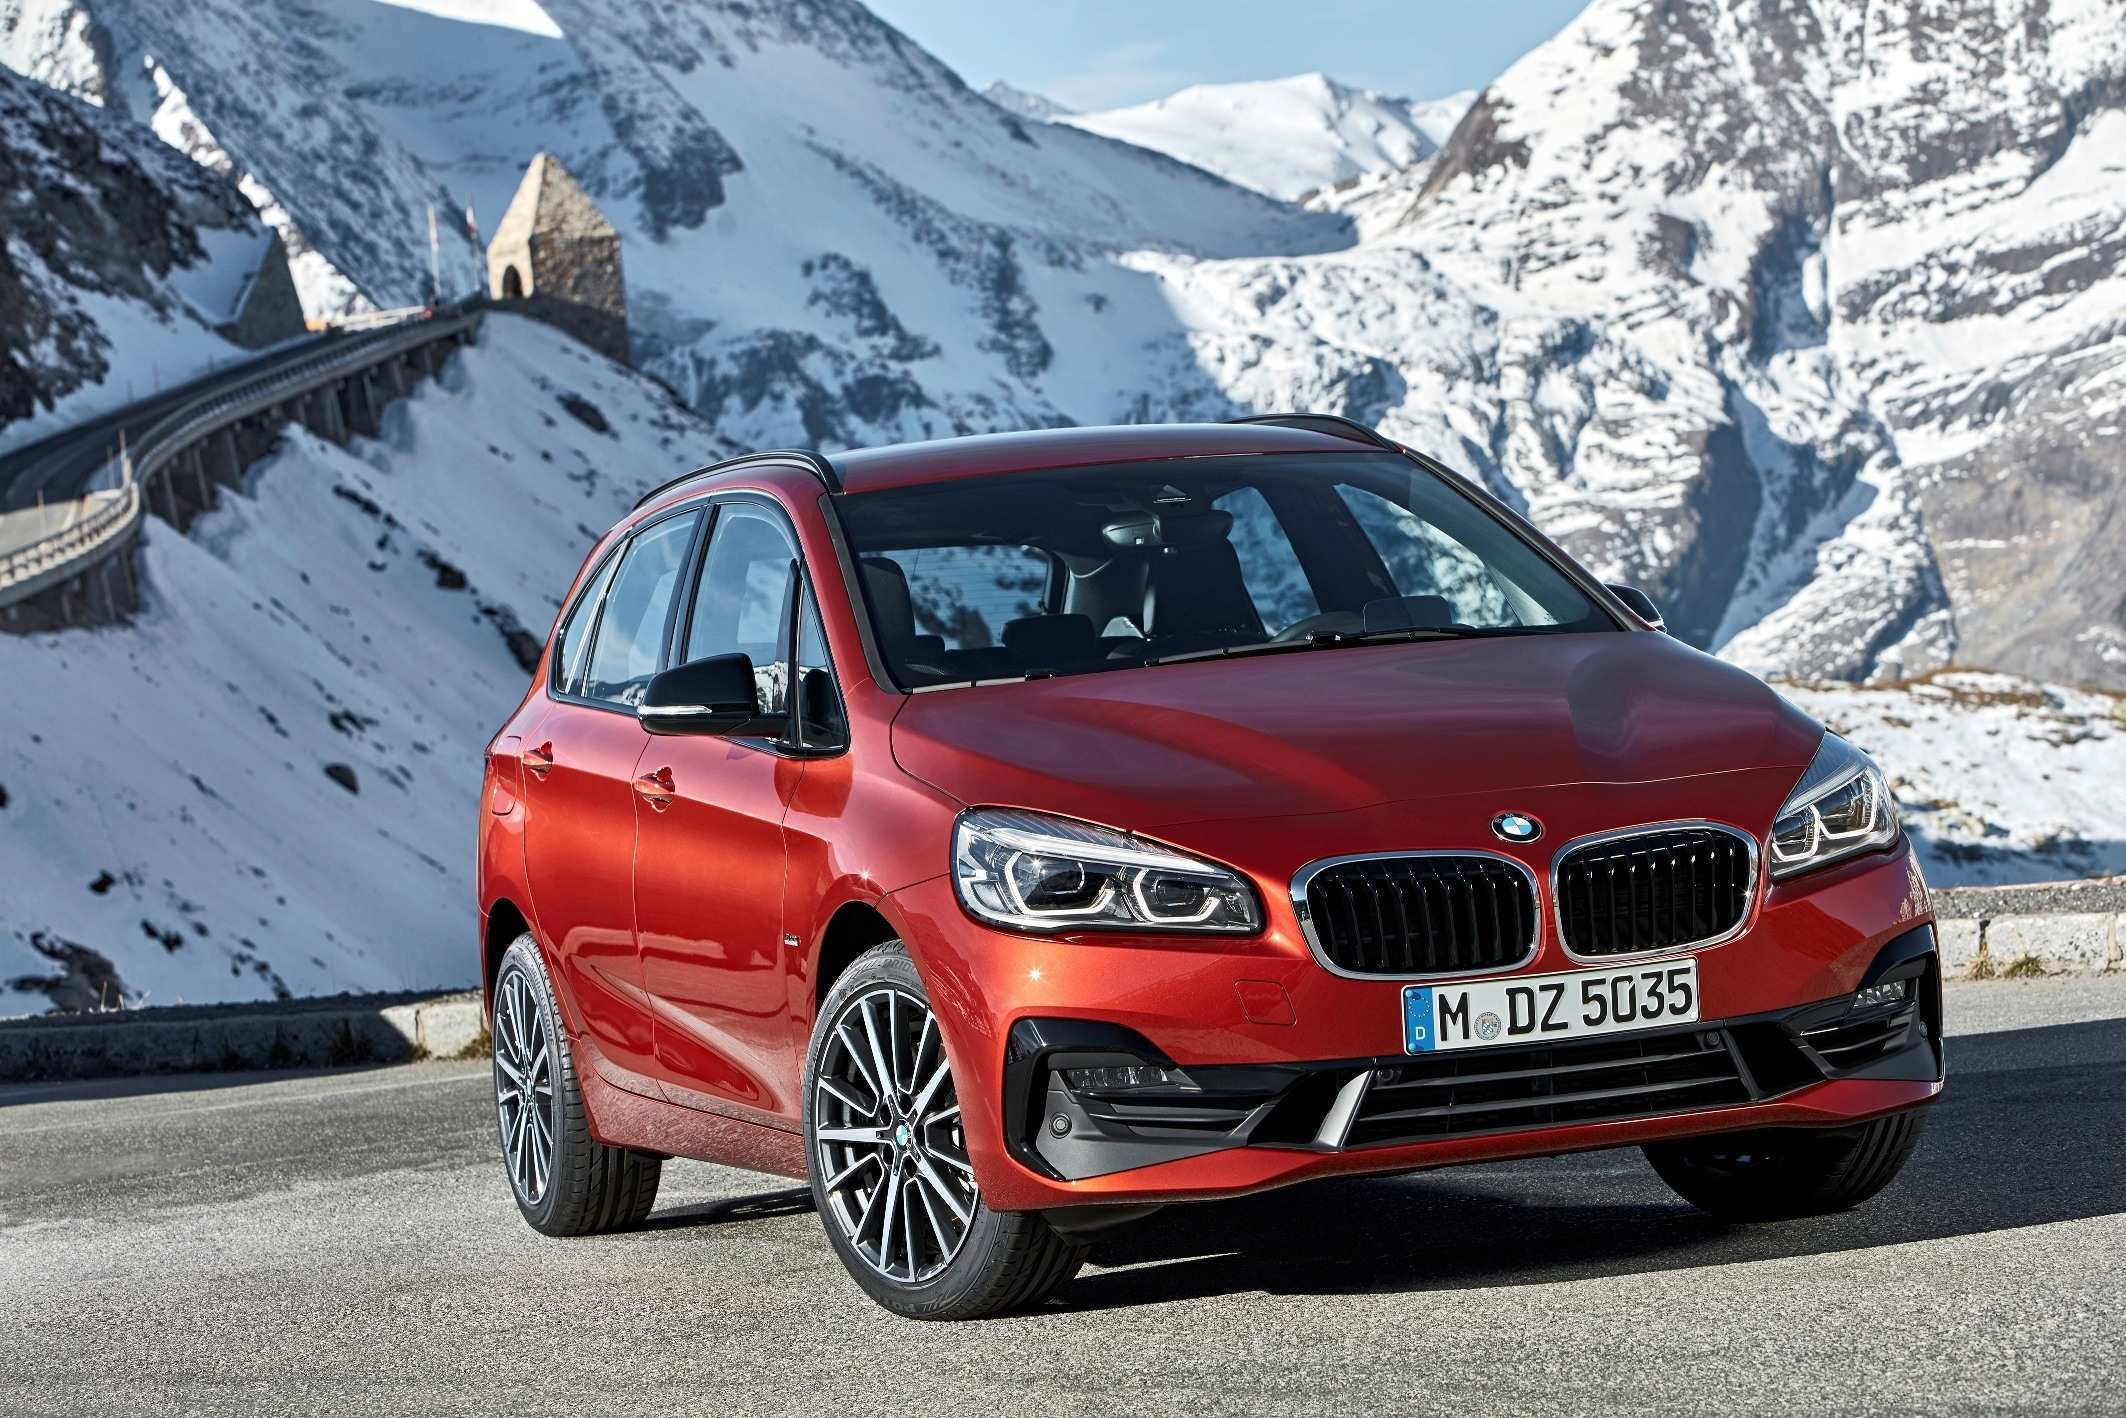 46 Best Review 2020 BMW 220D Xdrive Engine by 2020 BMW 220D Xdrive